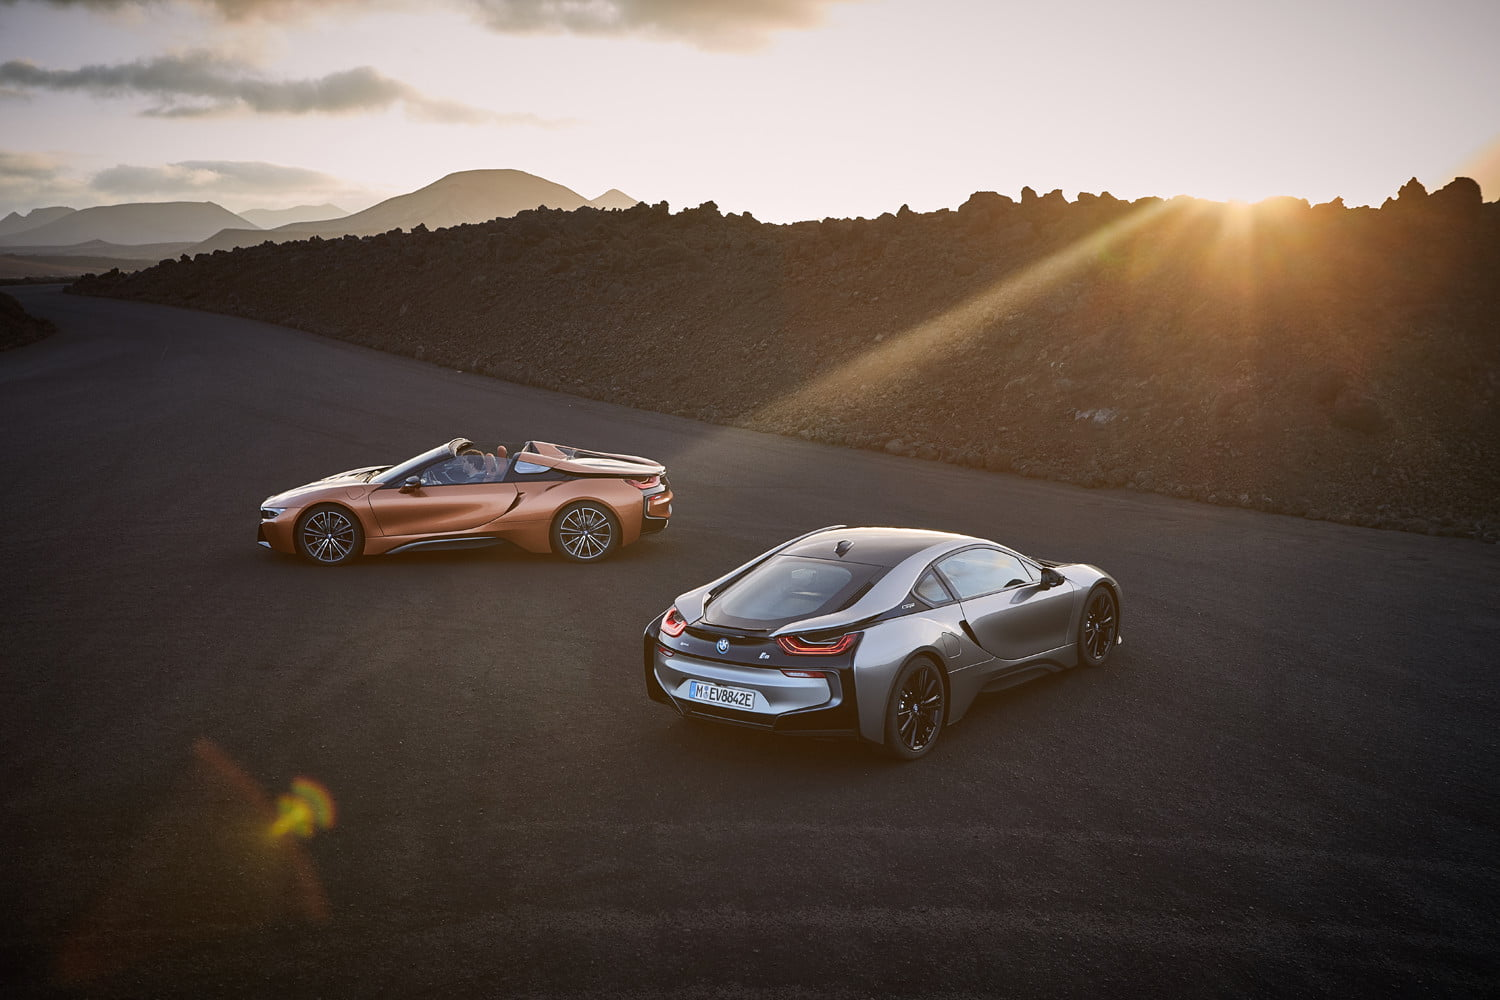 2019 bmw i8 roadster news specs performance price pictures shooting lanzarote